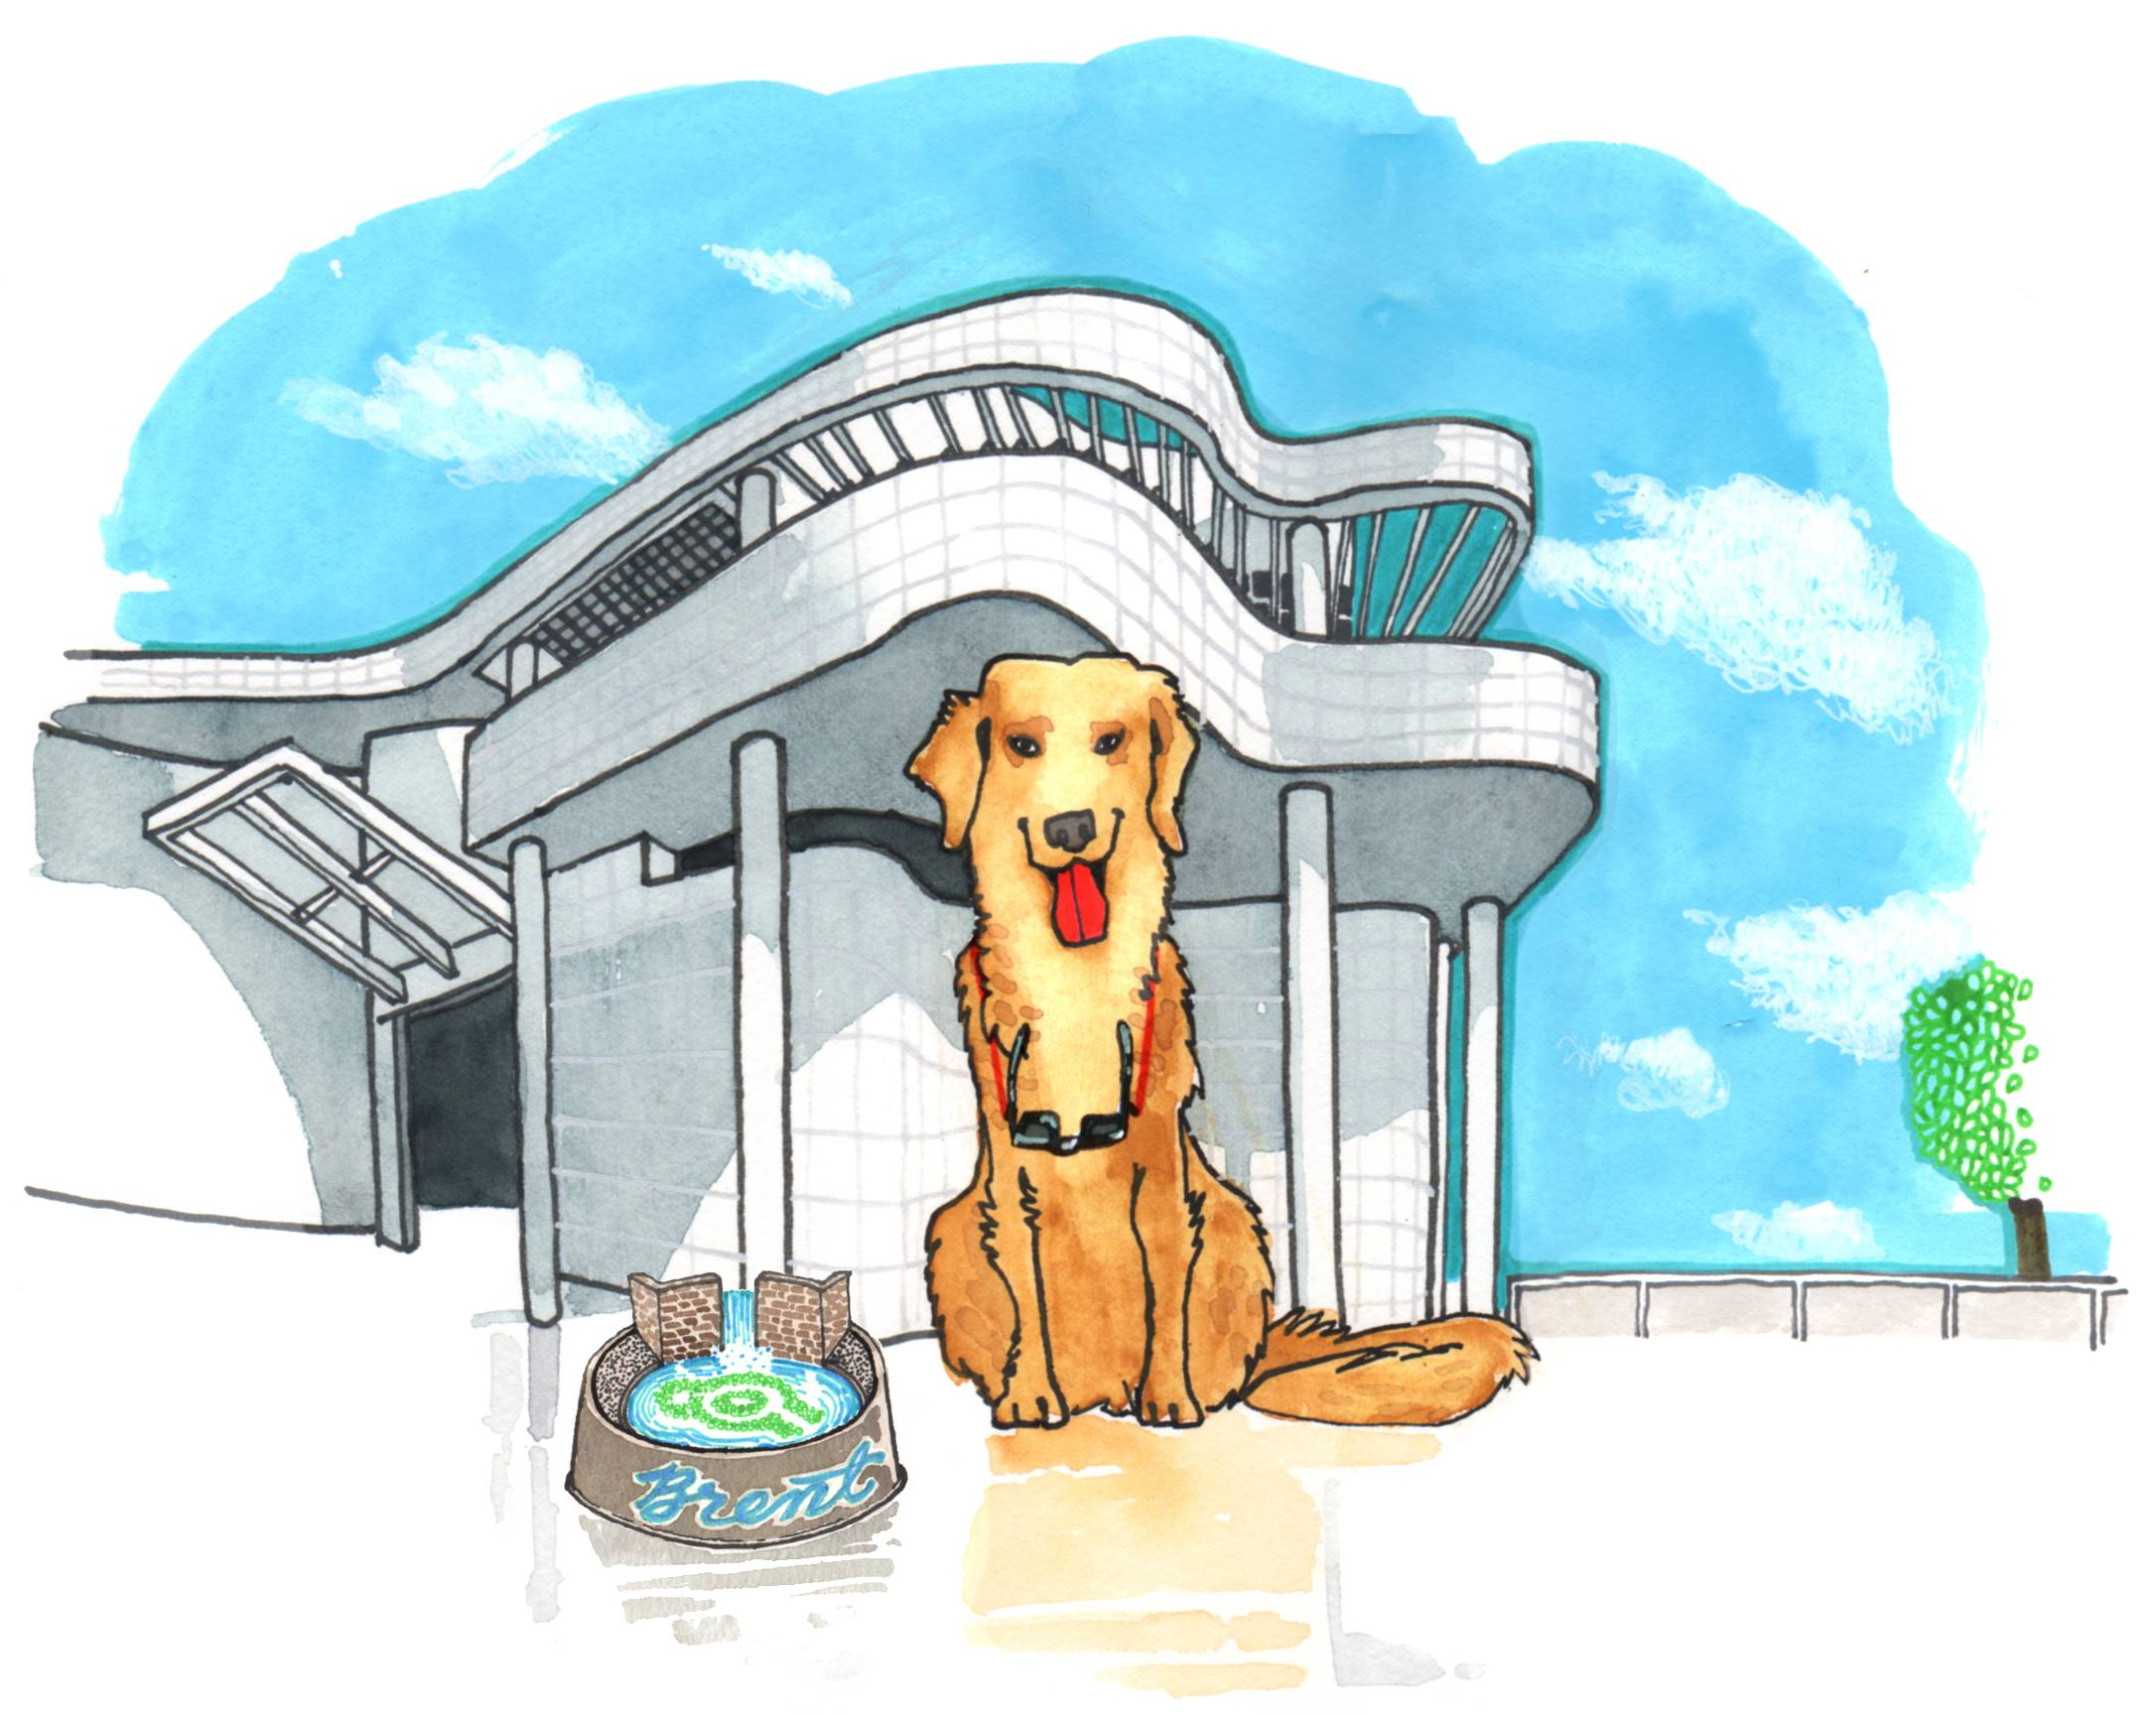 Golden Retriever at the Getty Center in Brentwood | Illustration by Max Kornell